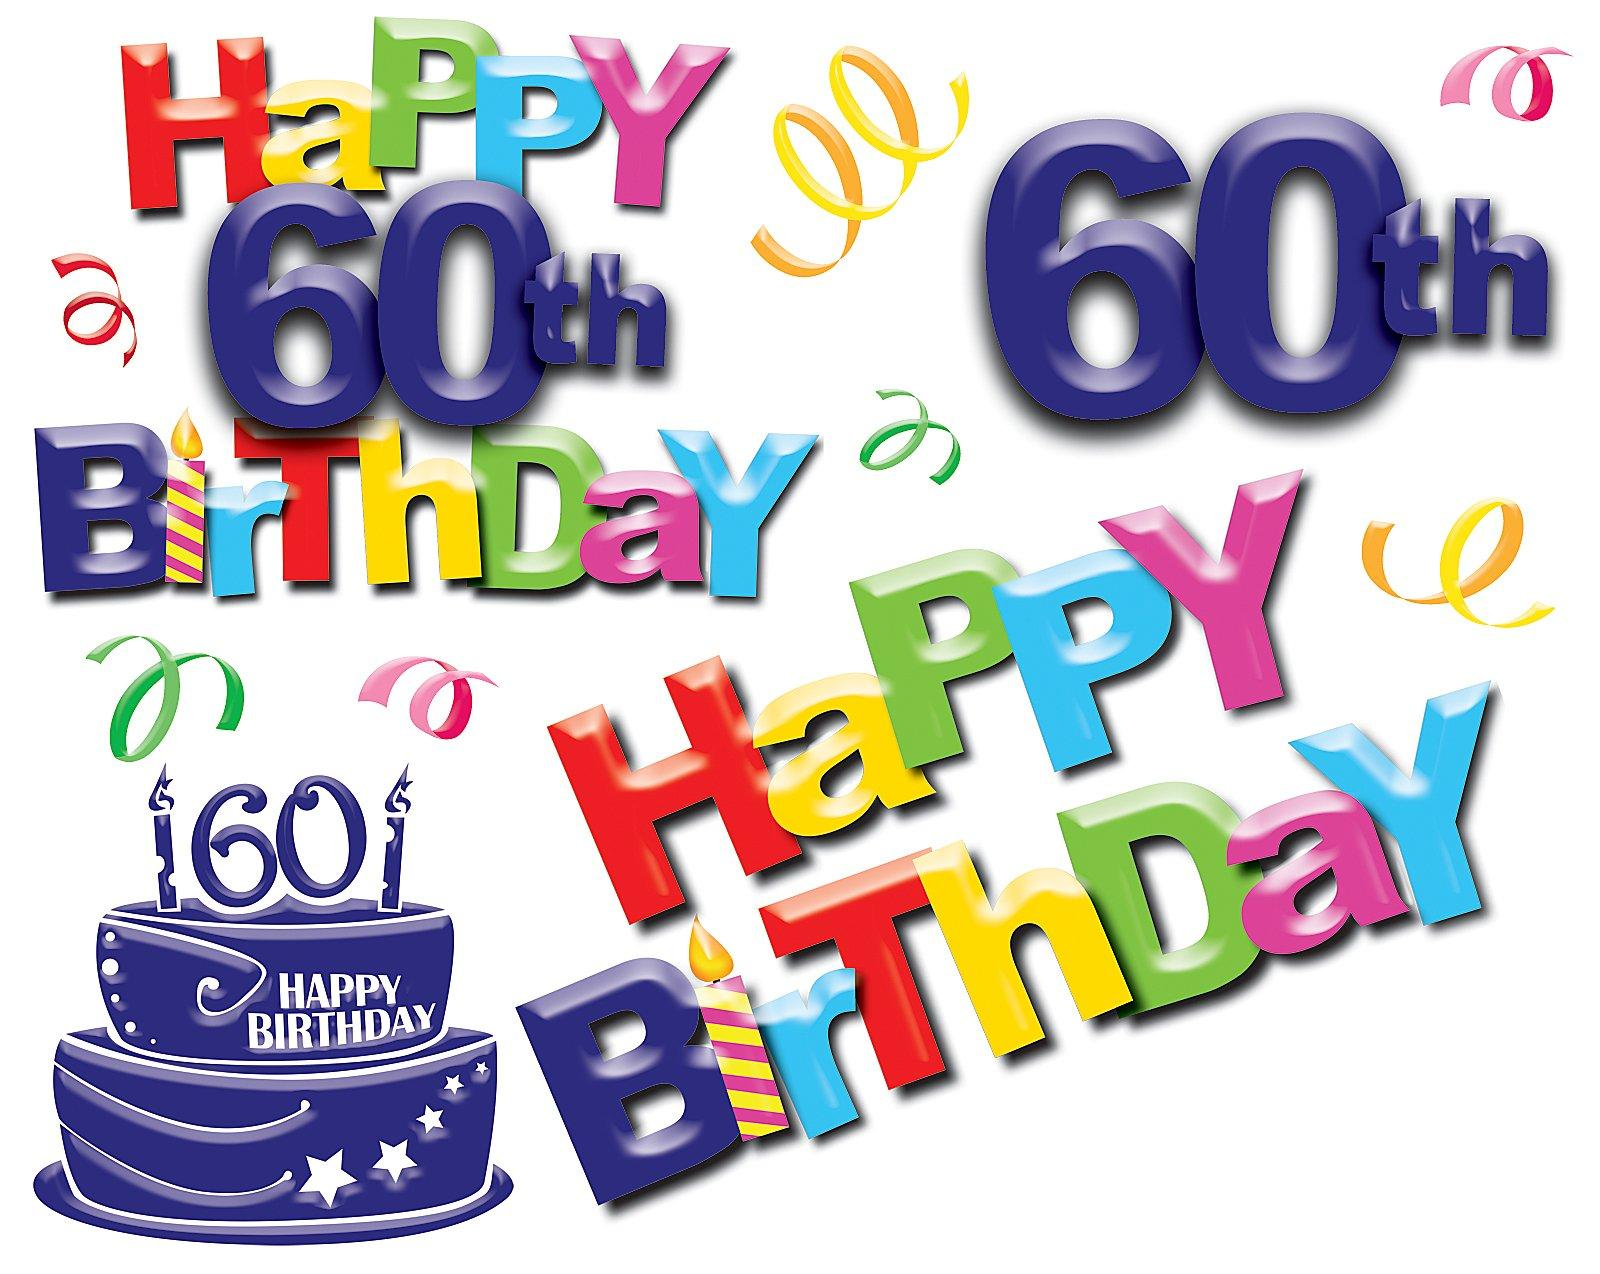 60th Birthday Png Hd Transparent 60th Birthday Hd Png Images Pluspng